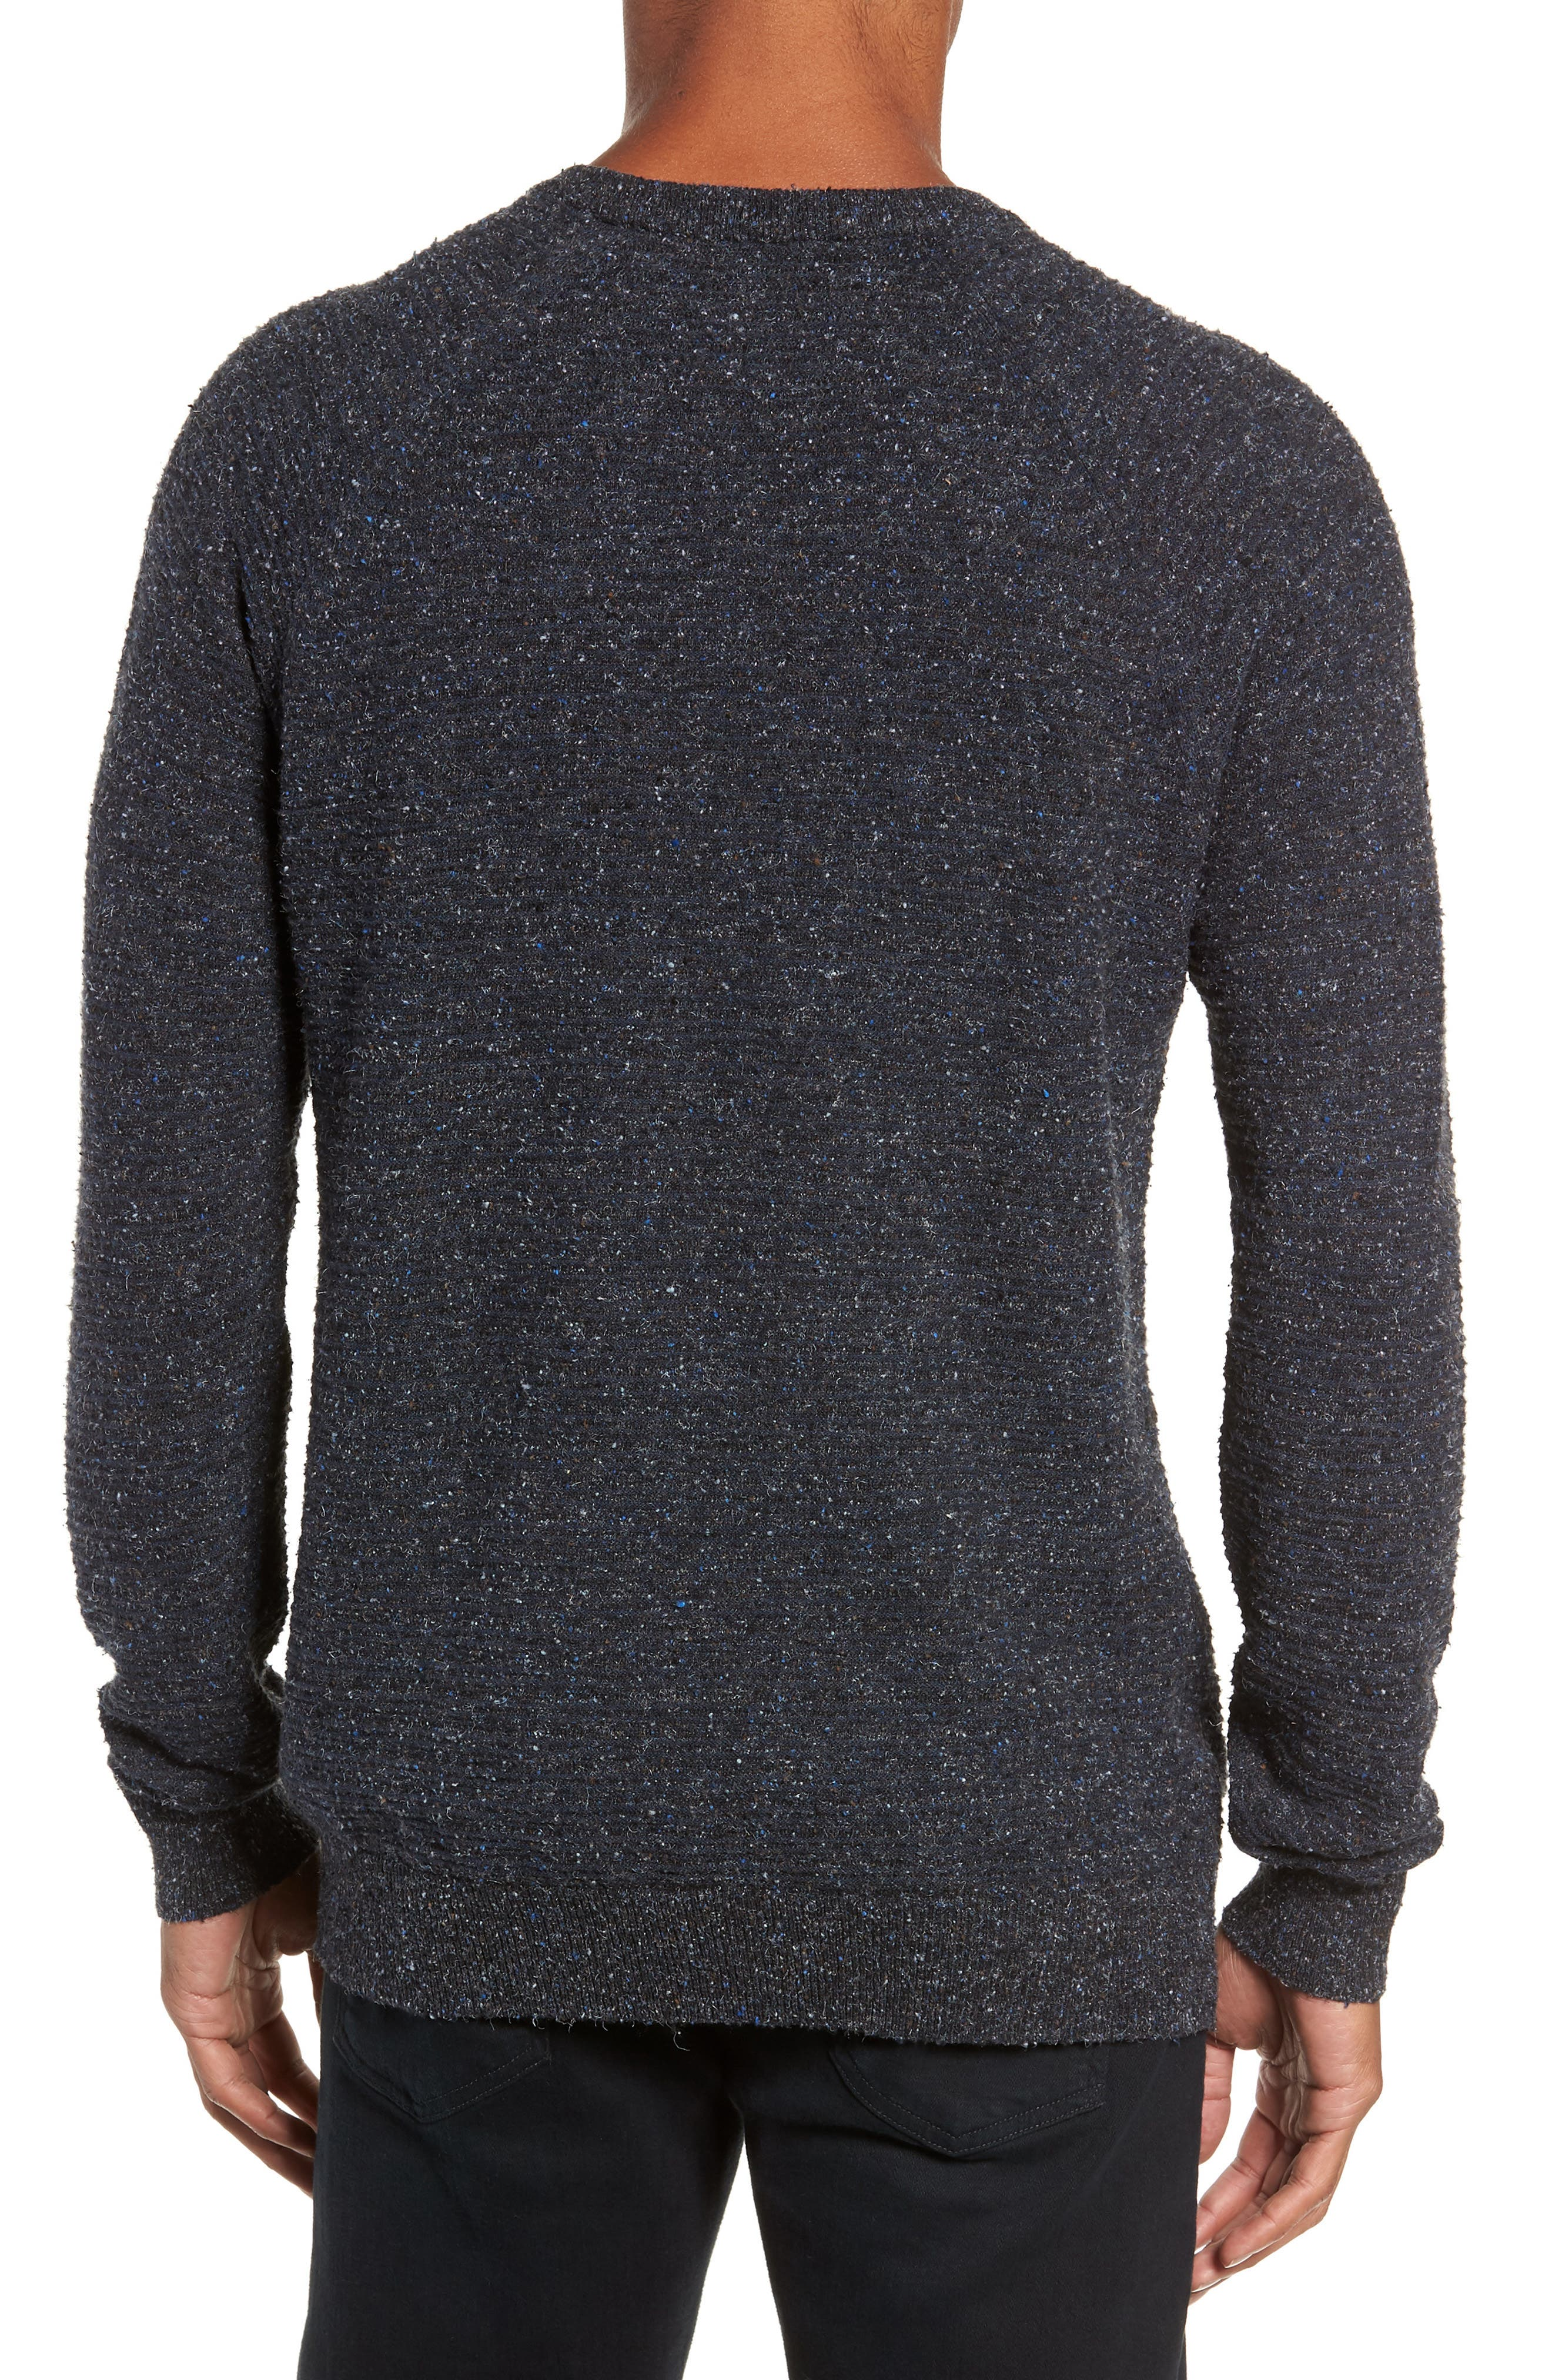 Speckle Stripe Sweater,                             Alternate thumbnail 2, color,                             NAVY/ CHARCOAL